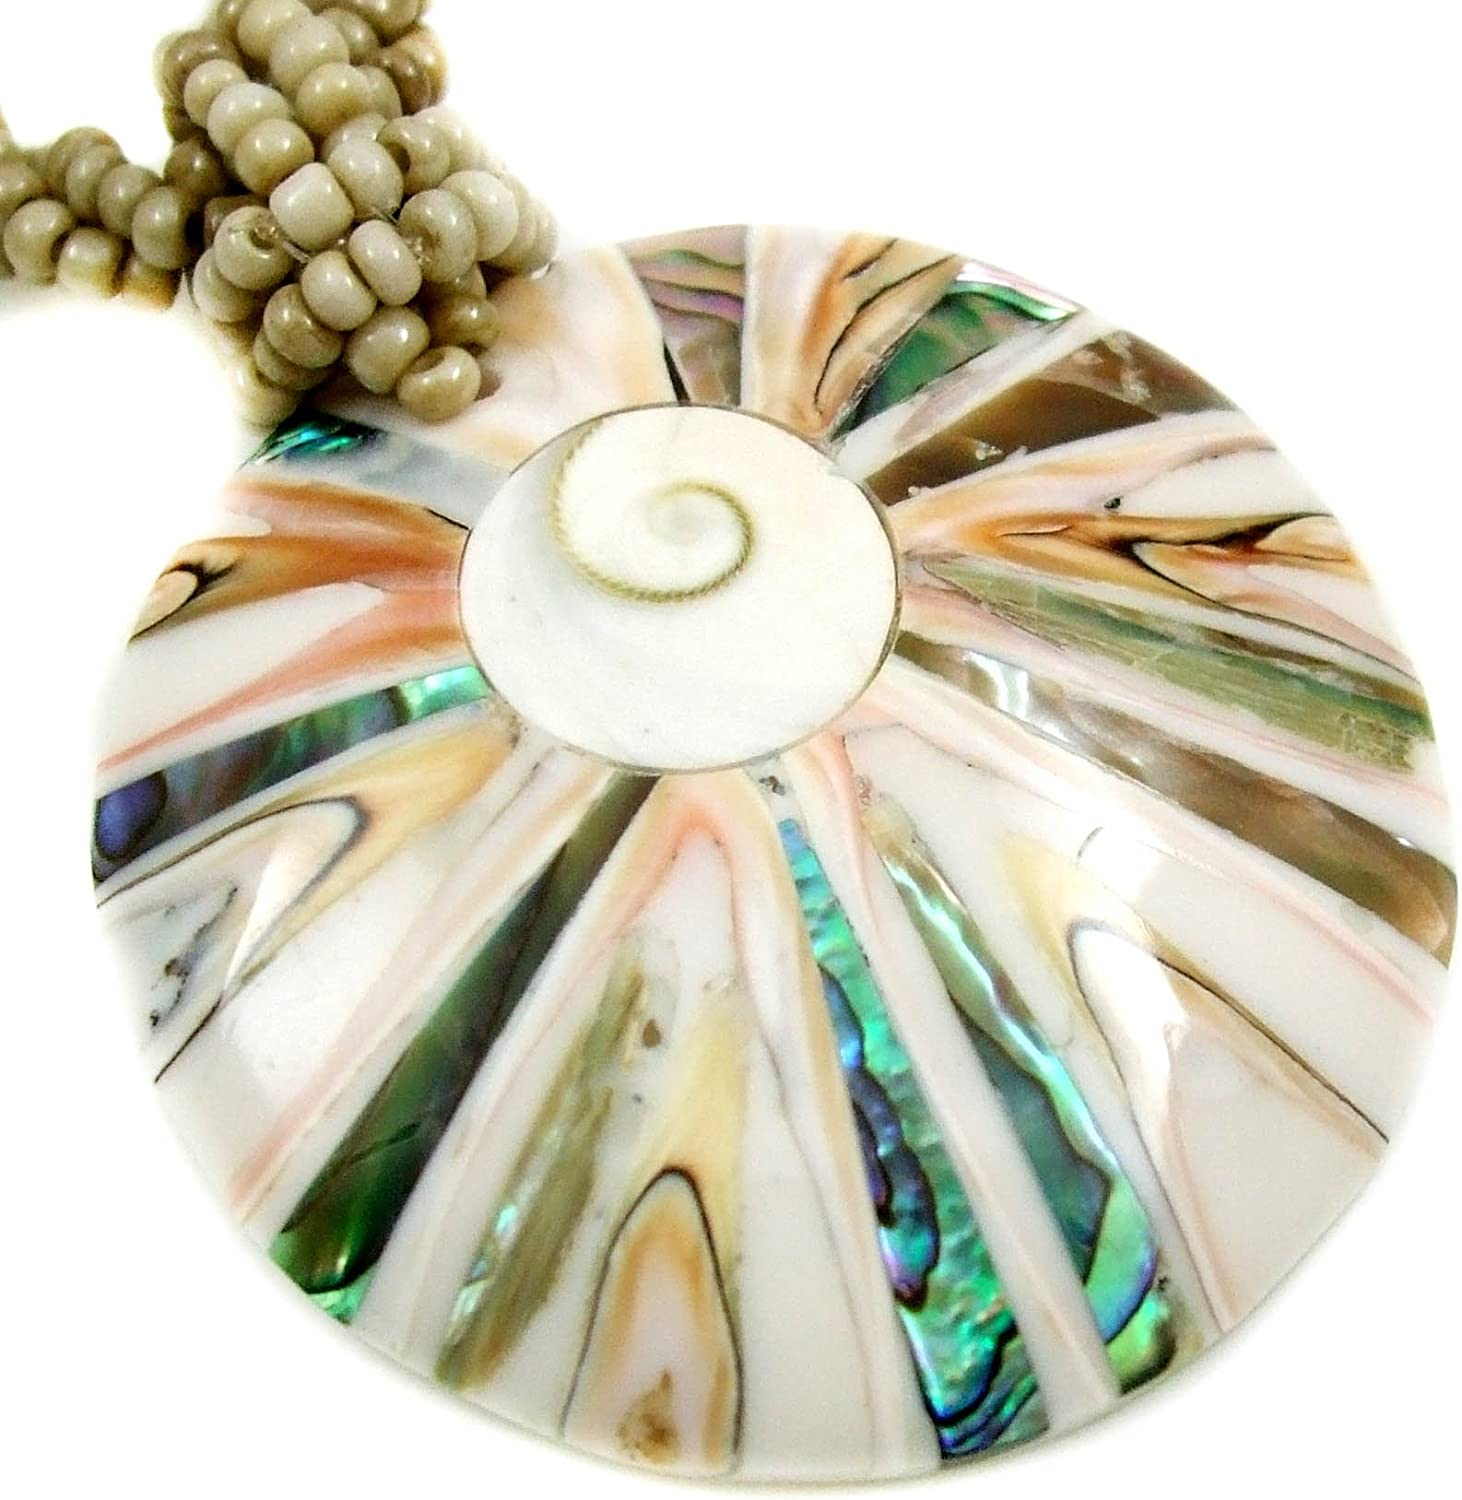 Round Natural Abalone Shell, Cone Shell, Shiva Eye Pendant 18.5 Inches Beads Necklace Handmade Jewelry AA270